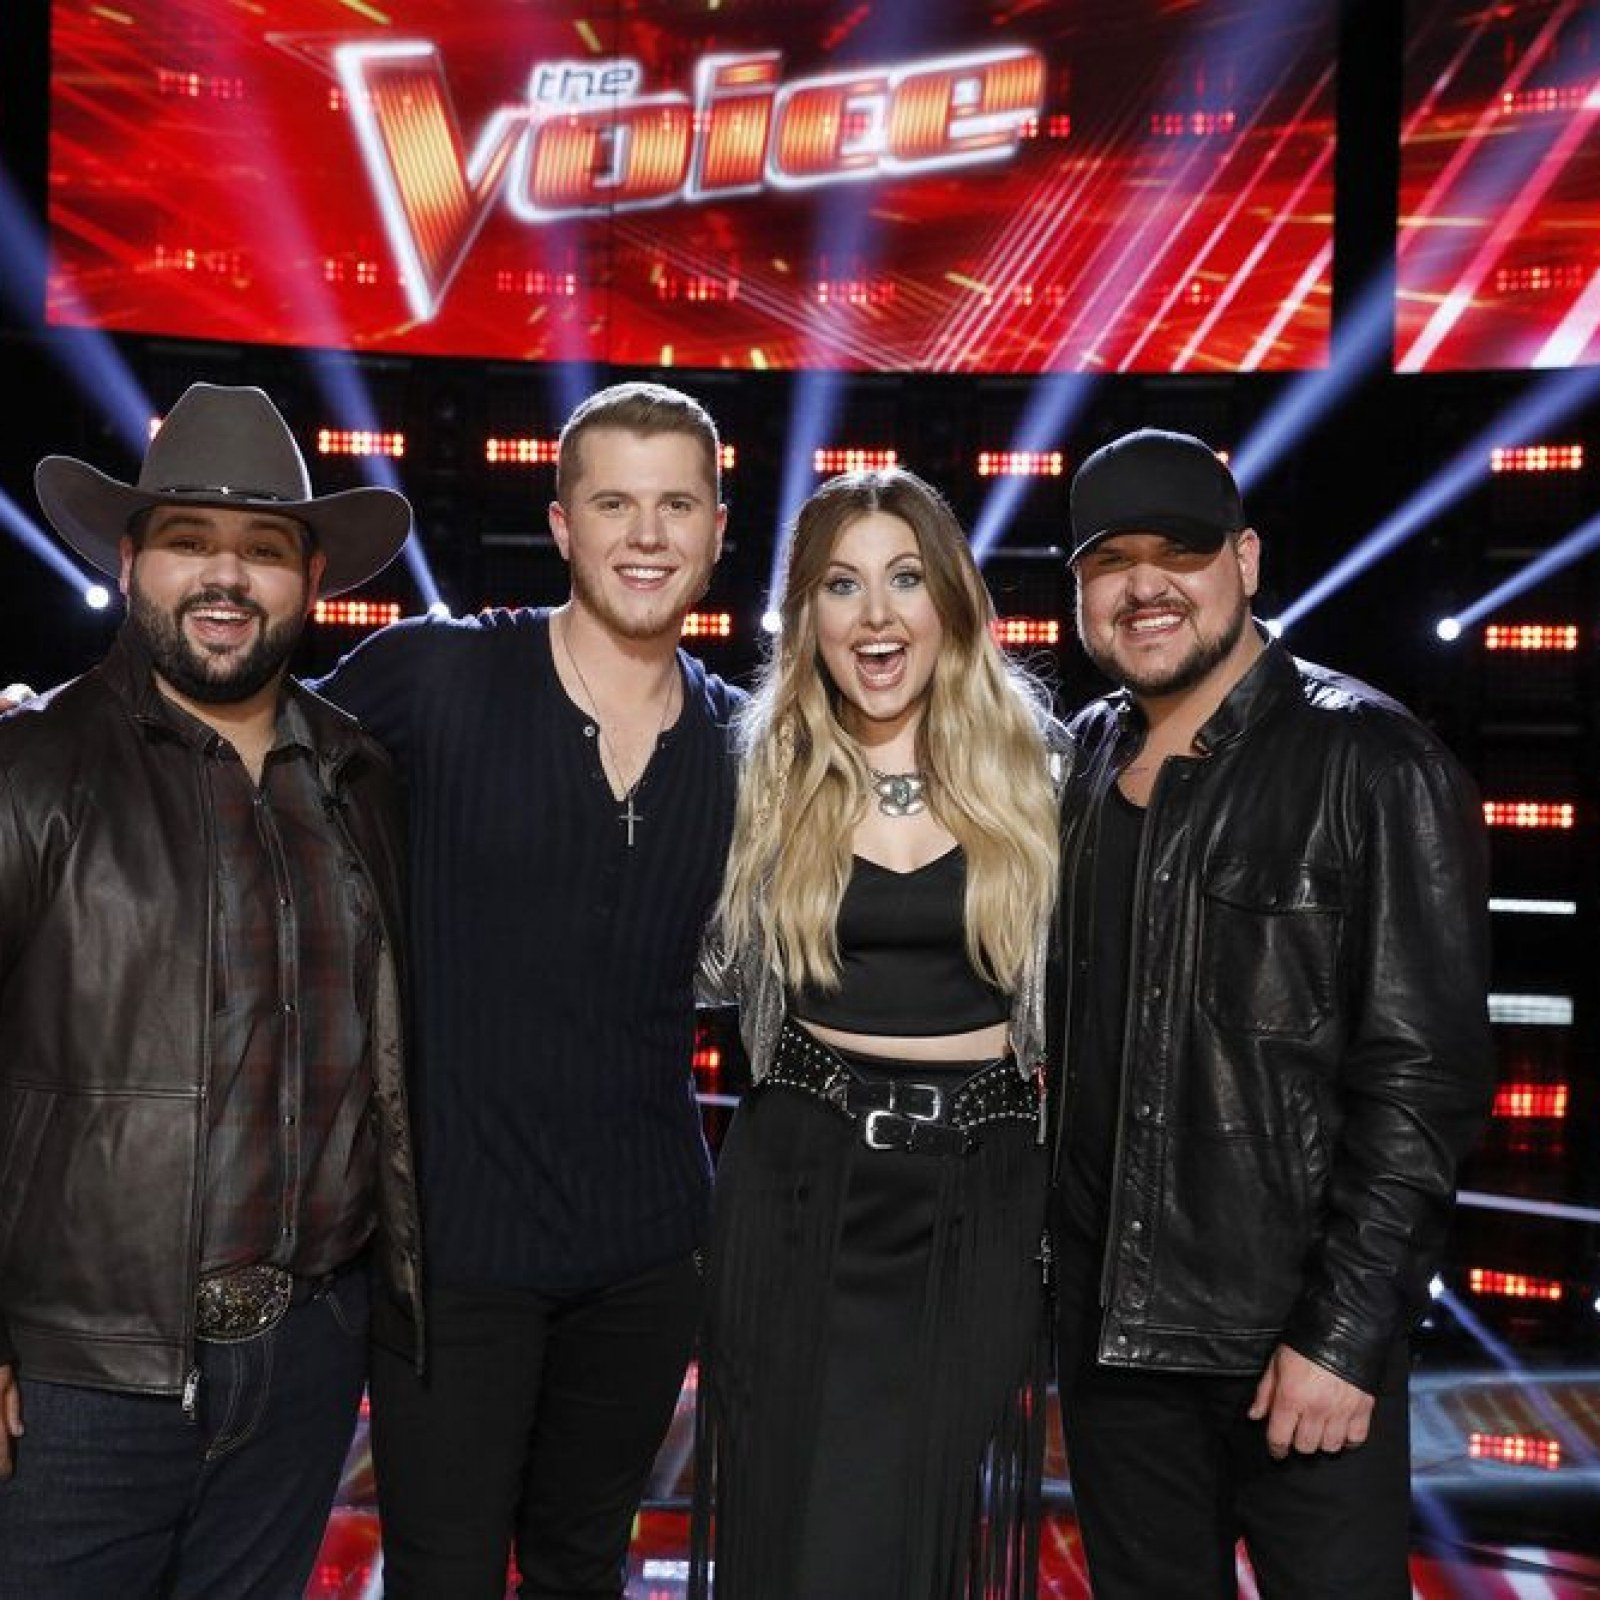 iTunes Top 10 List May Reveal 'The Voice' 2019 Winner